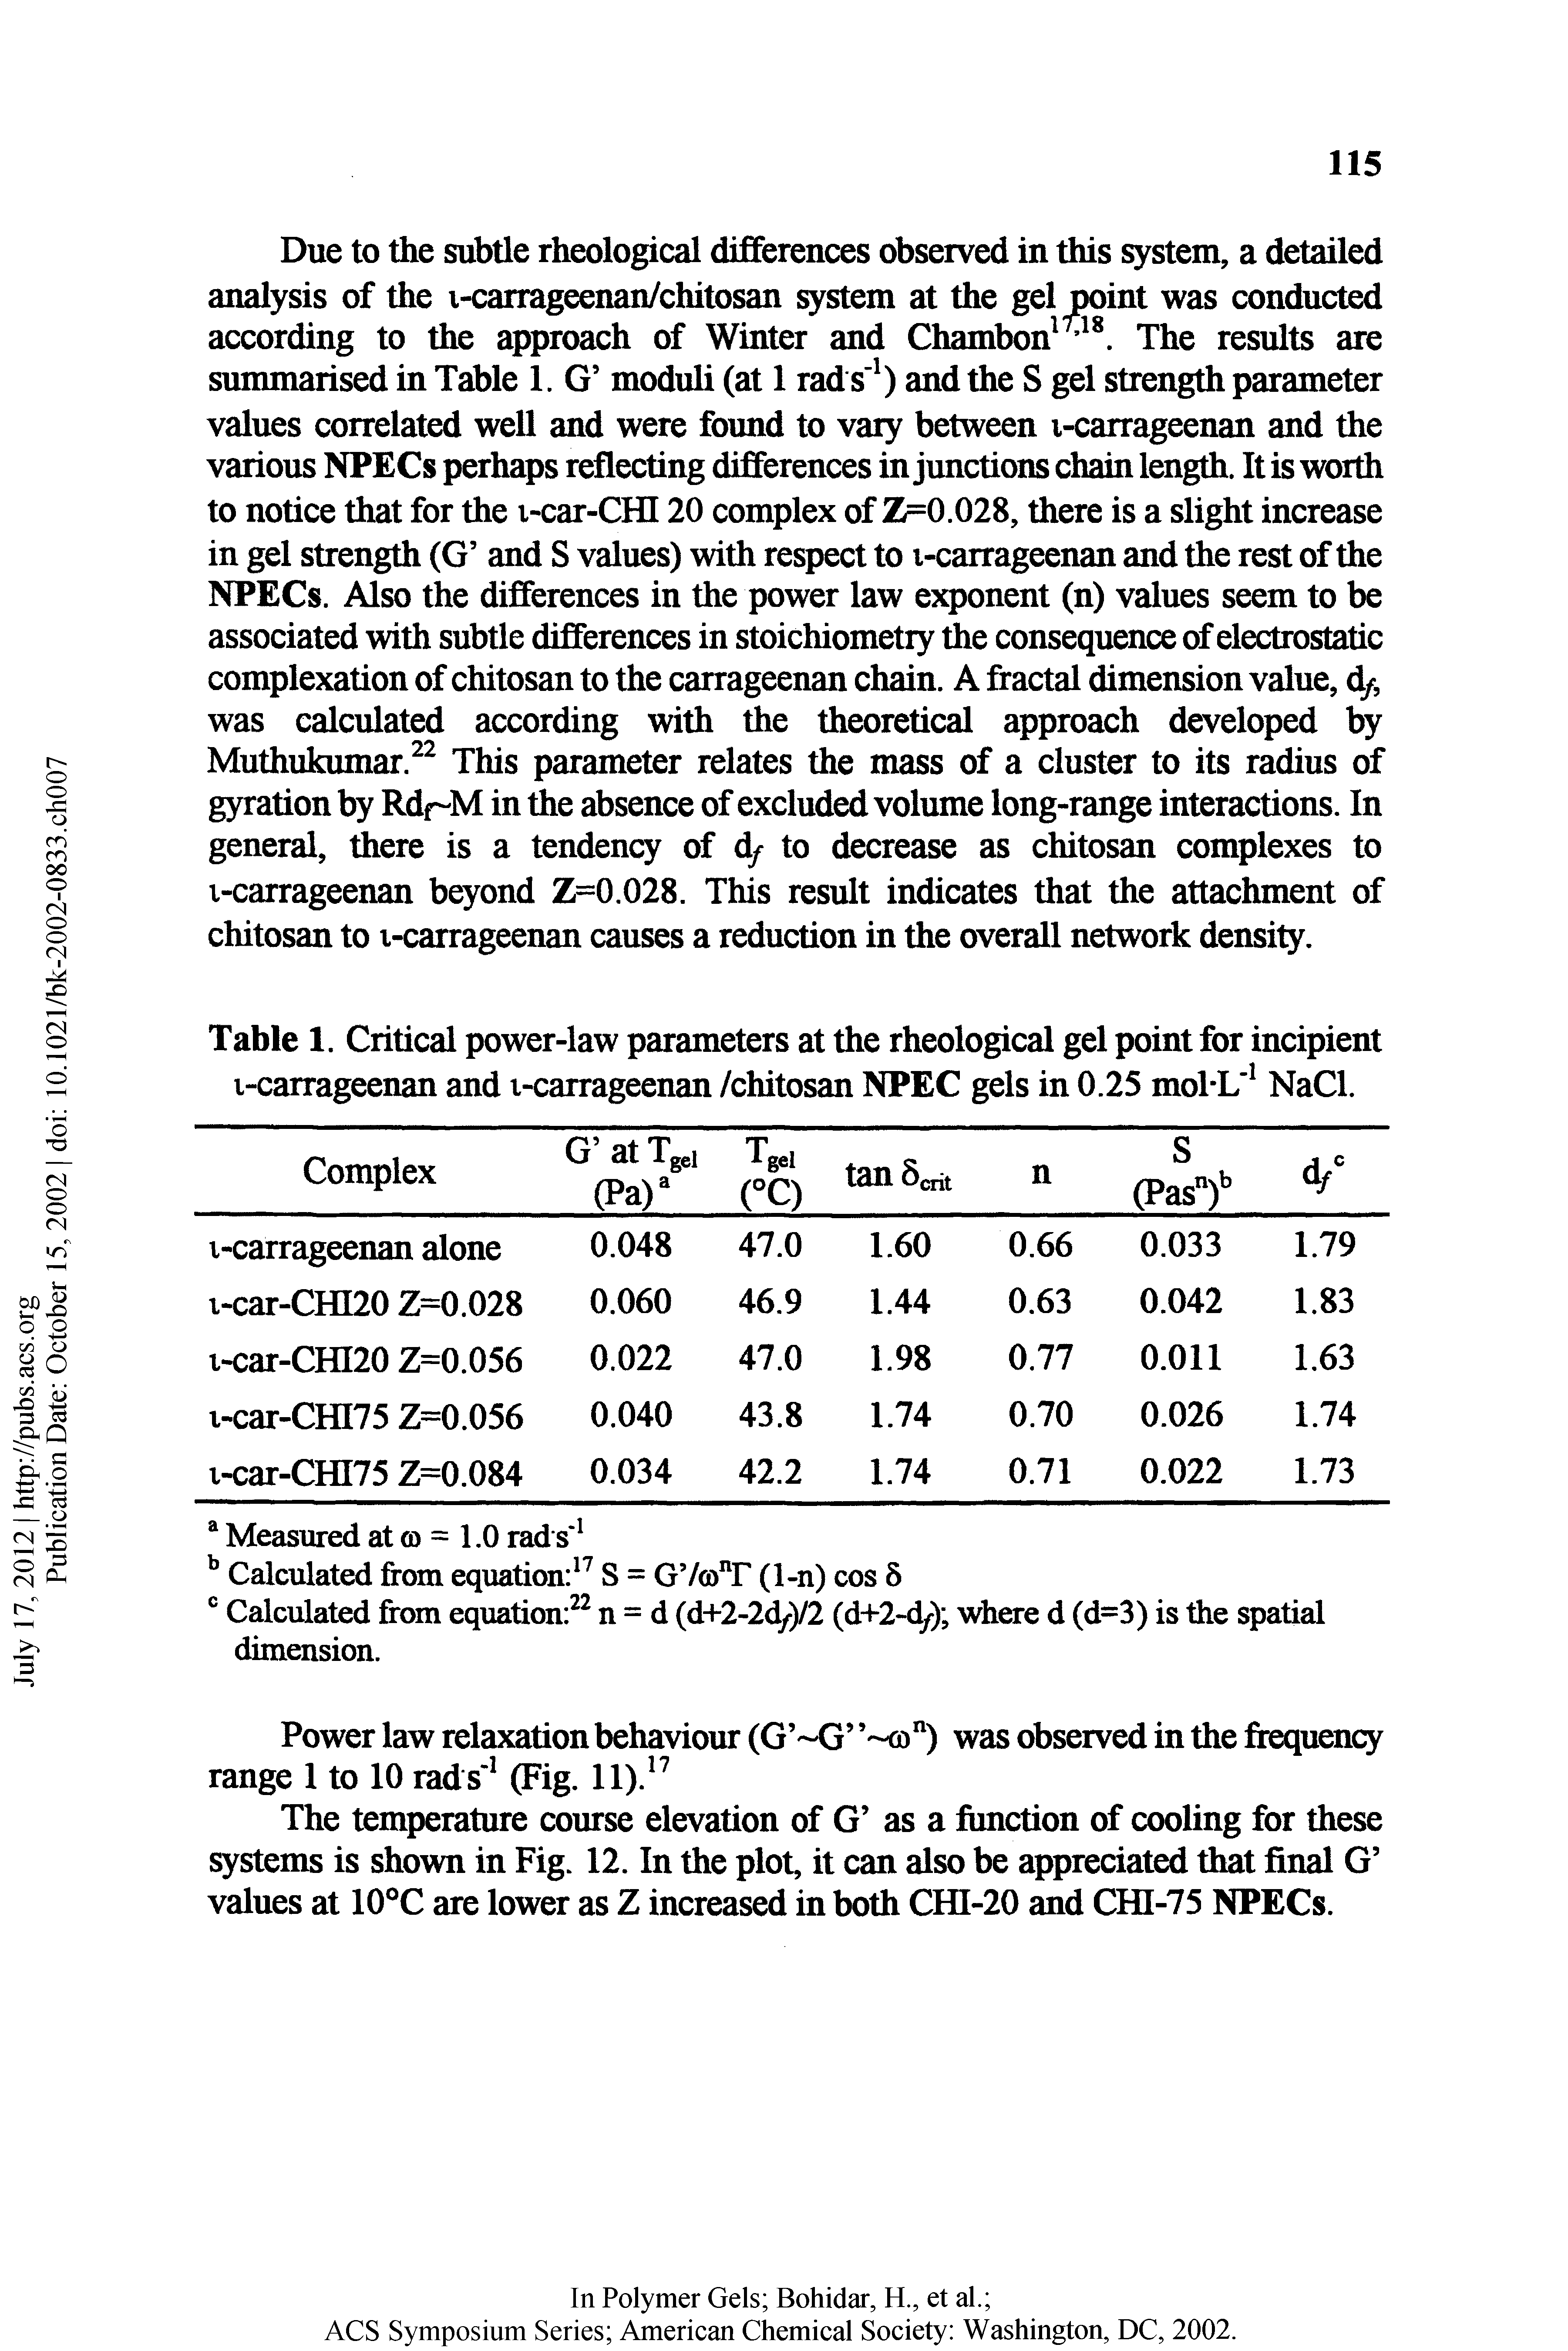 "Table 1. <a href=""/info/critical_power"">Critical power</a>-law parameters at the rheological gel point for incipient i-carrageenan and t-carrageenan /chitosan NPEC gels in 0.25 mol-L NaCl."